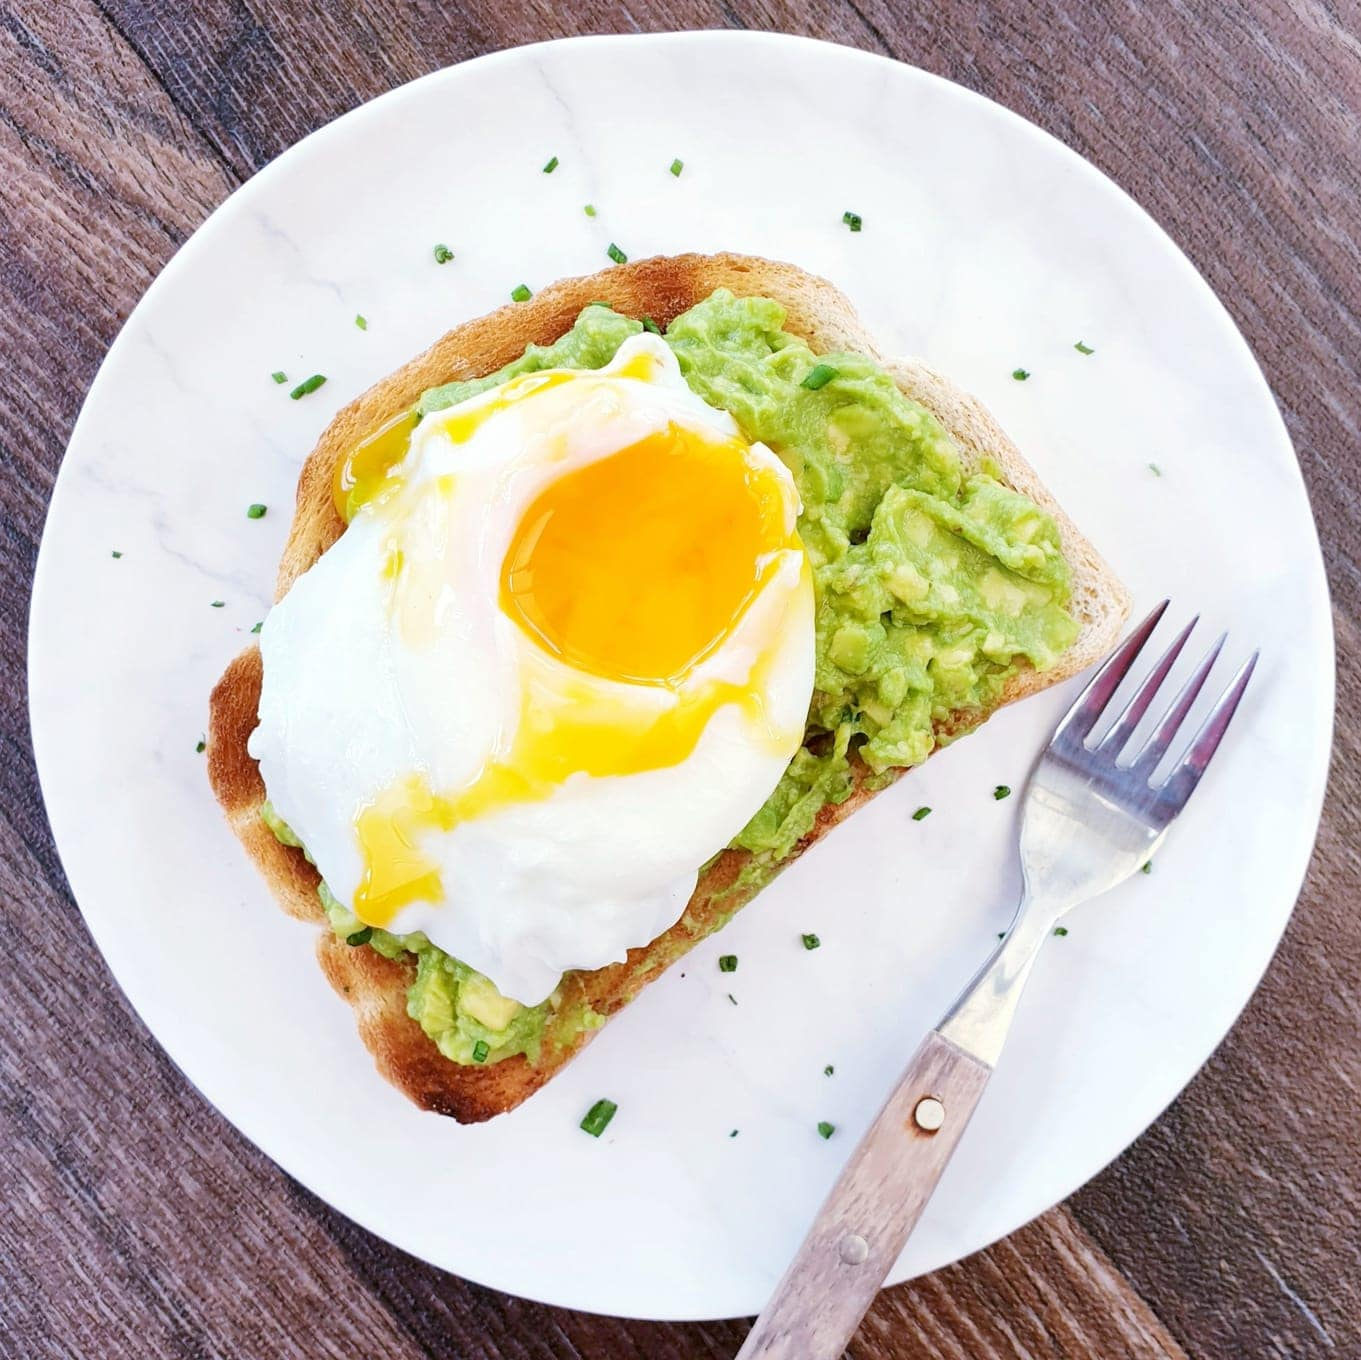 Bagel, Avocado & Eggs – An Everyday Brunch Feast